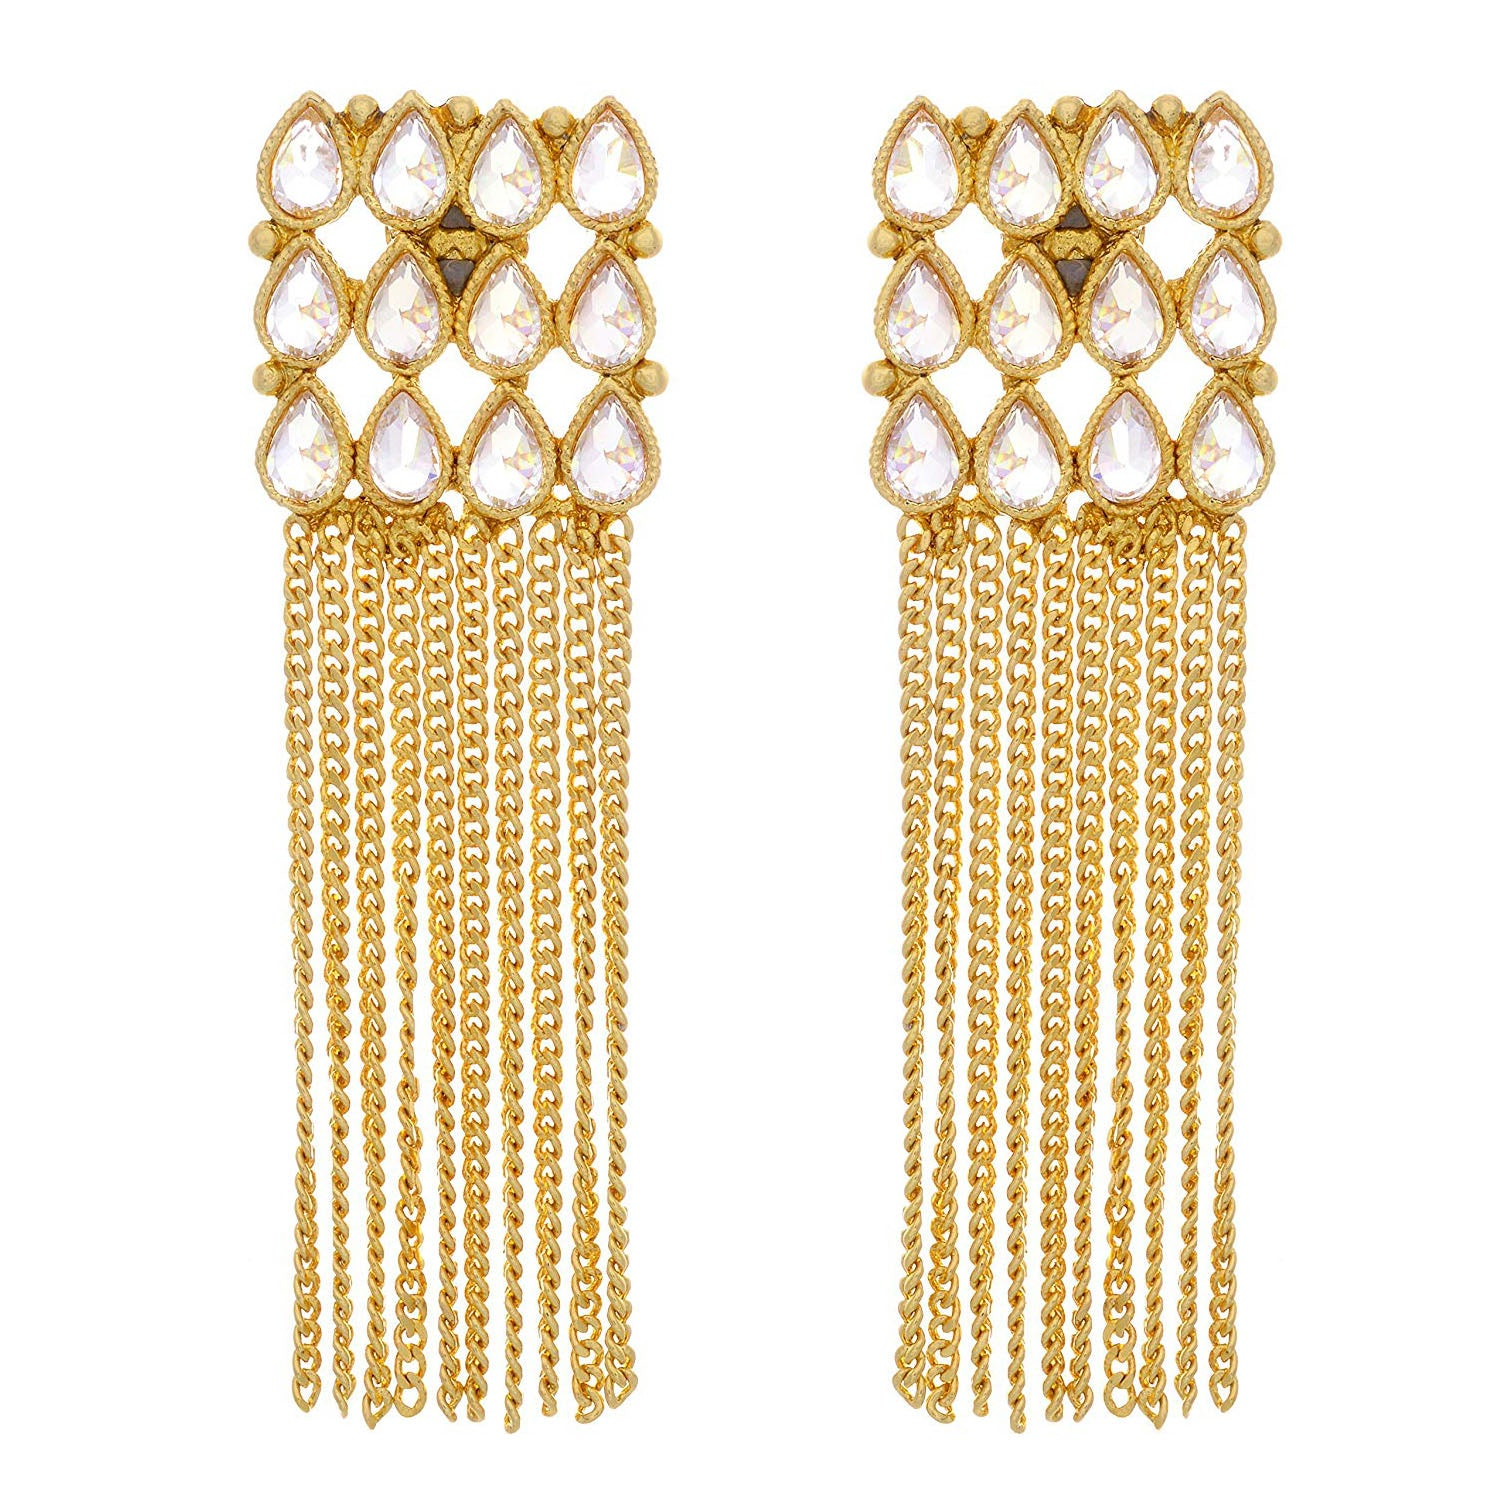 Jfl-Traditional Ethnic One Gram Gold Plated Polki Diamond Earrings For Women And Girls.